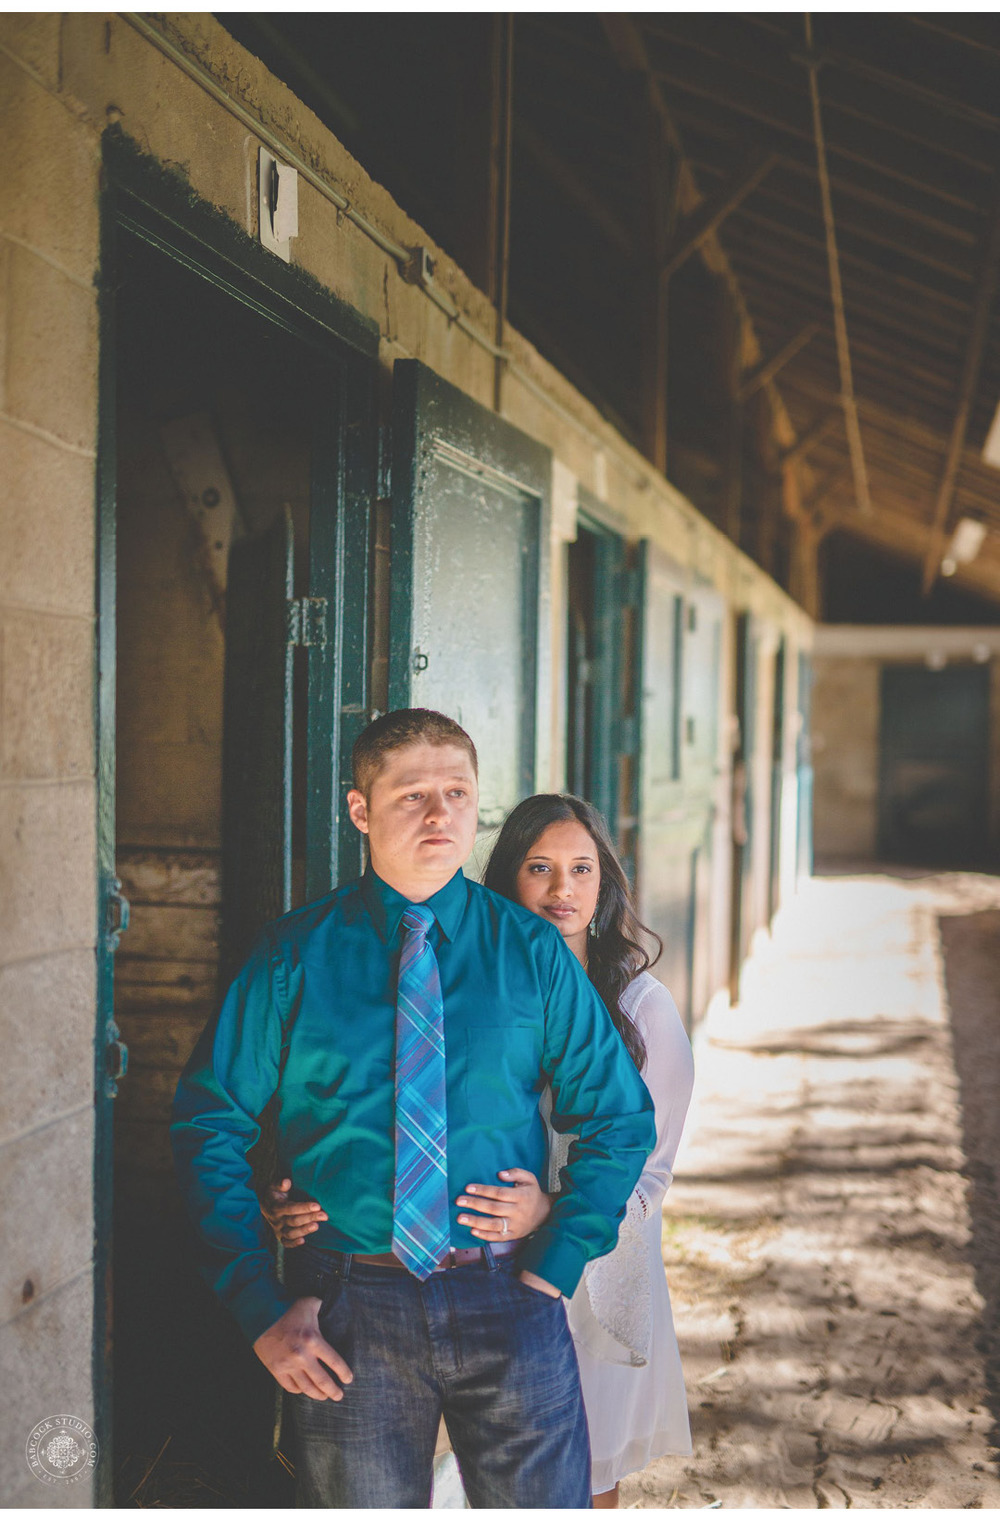 mayuri-brent-engagement-kentucky-wedding-photographer-11.jpg